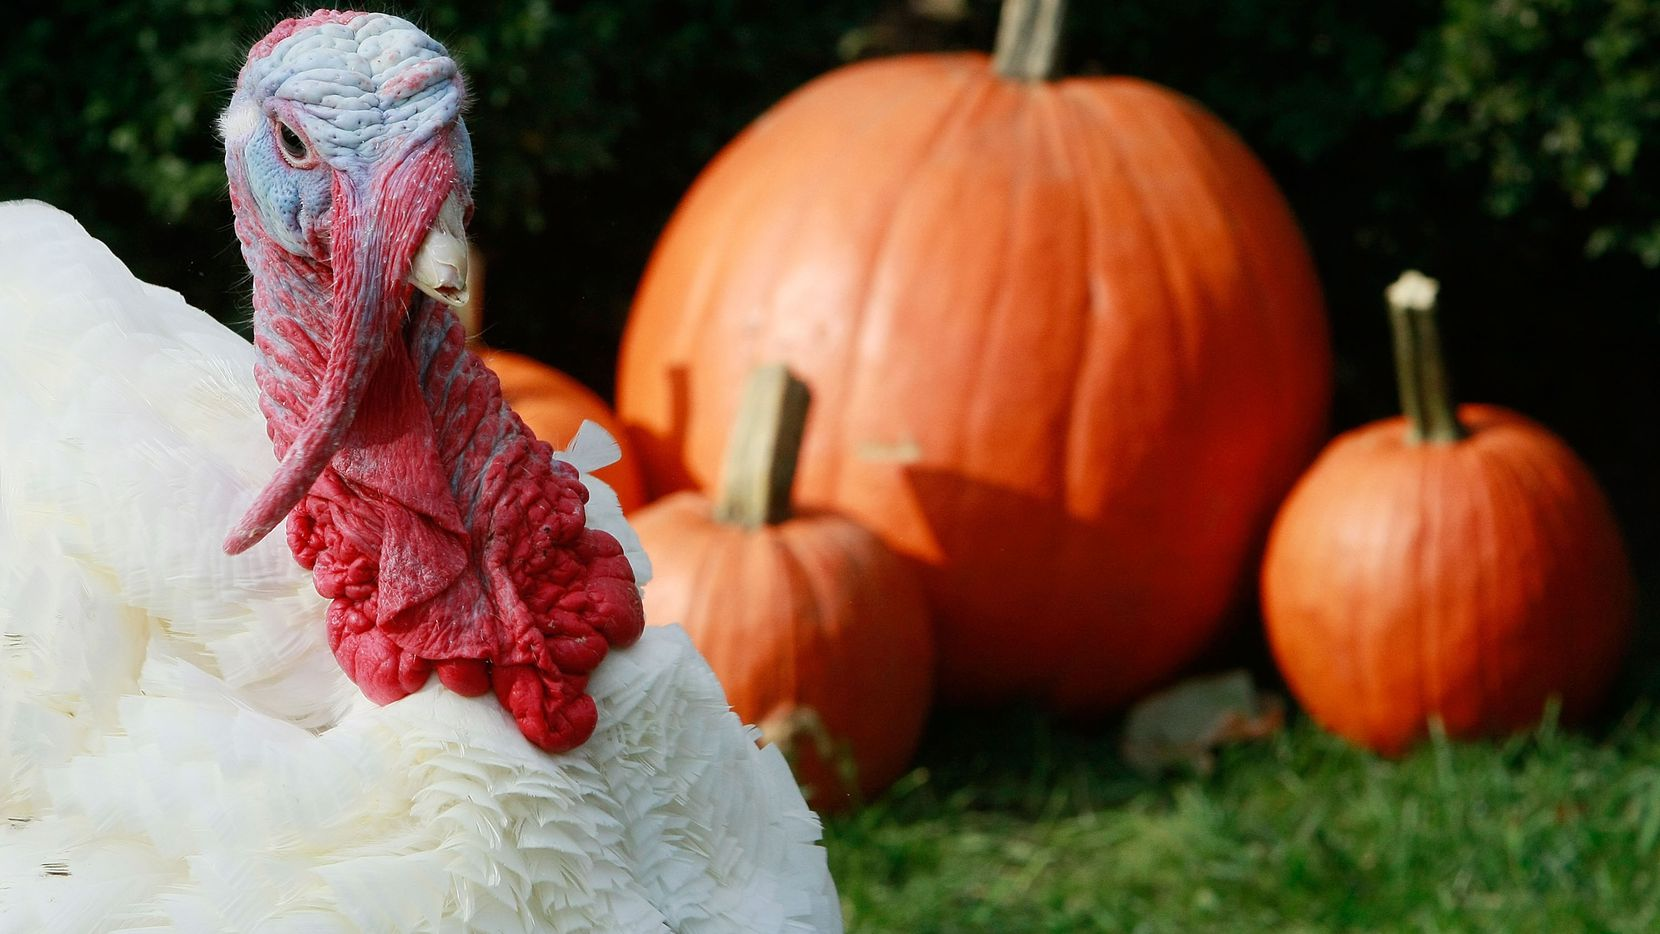 Dallas resident and former U.S. President George W. Bush pardoned this turkey named Pumpkin in 2008. That's as political as this Thanksgiving conversation will get.